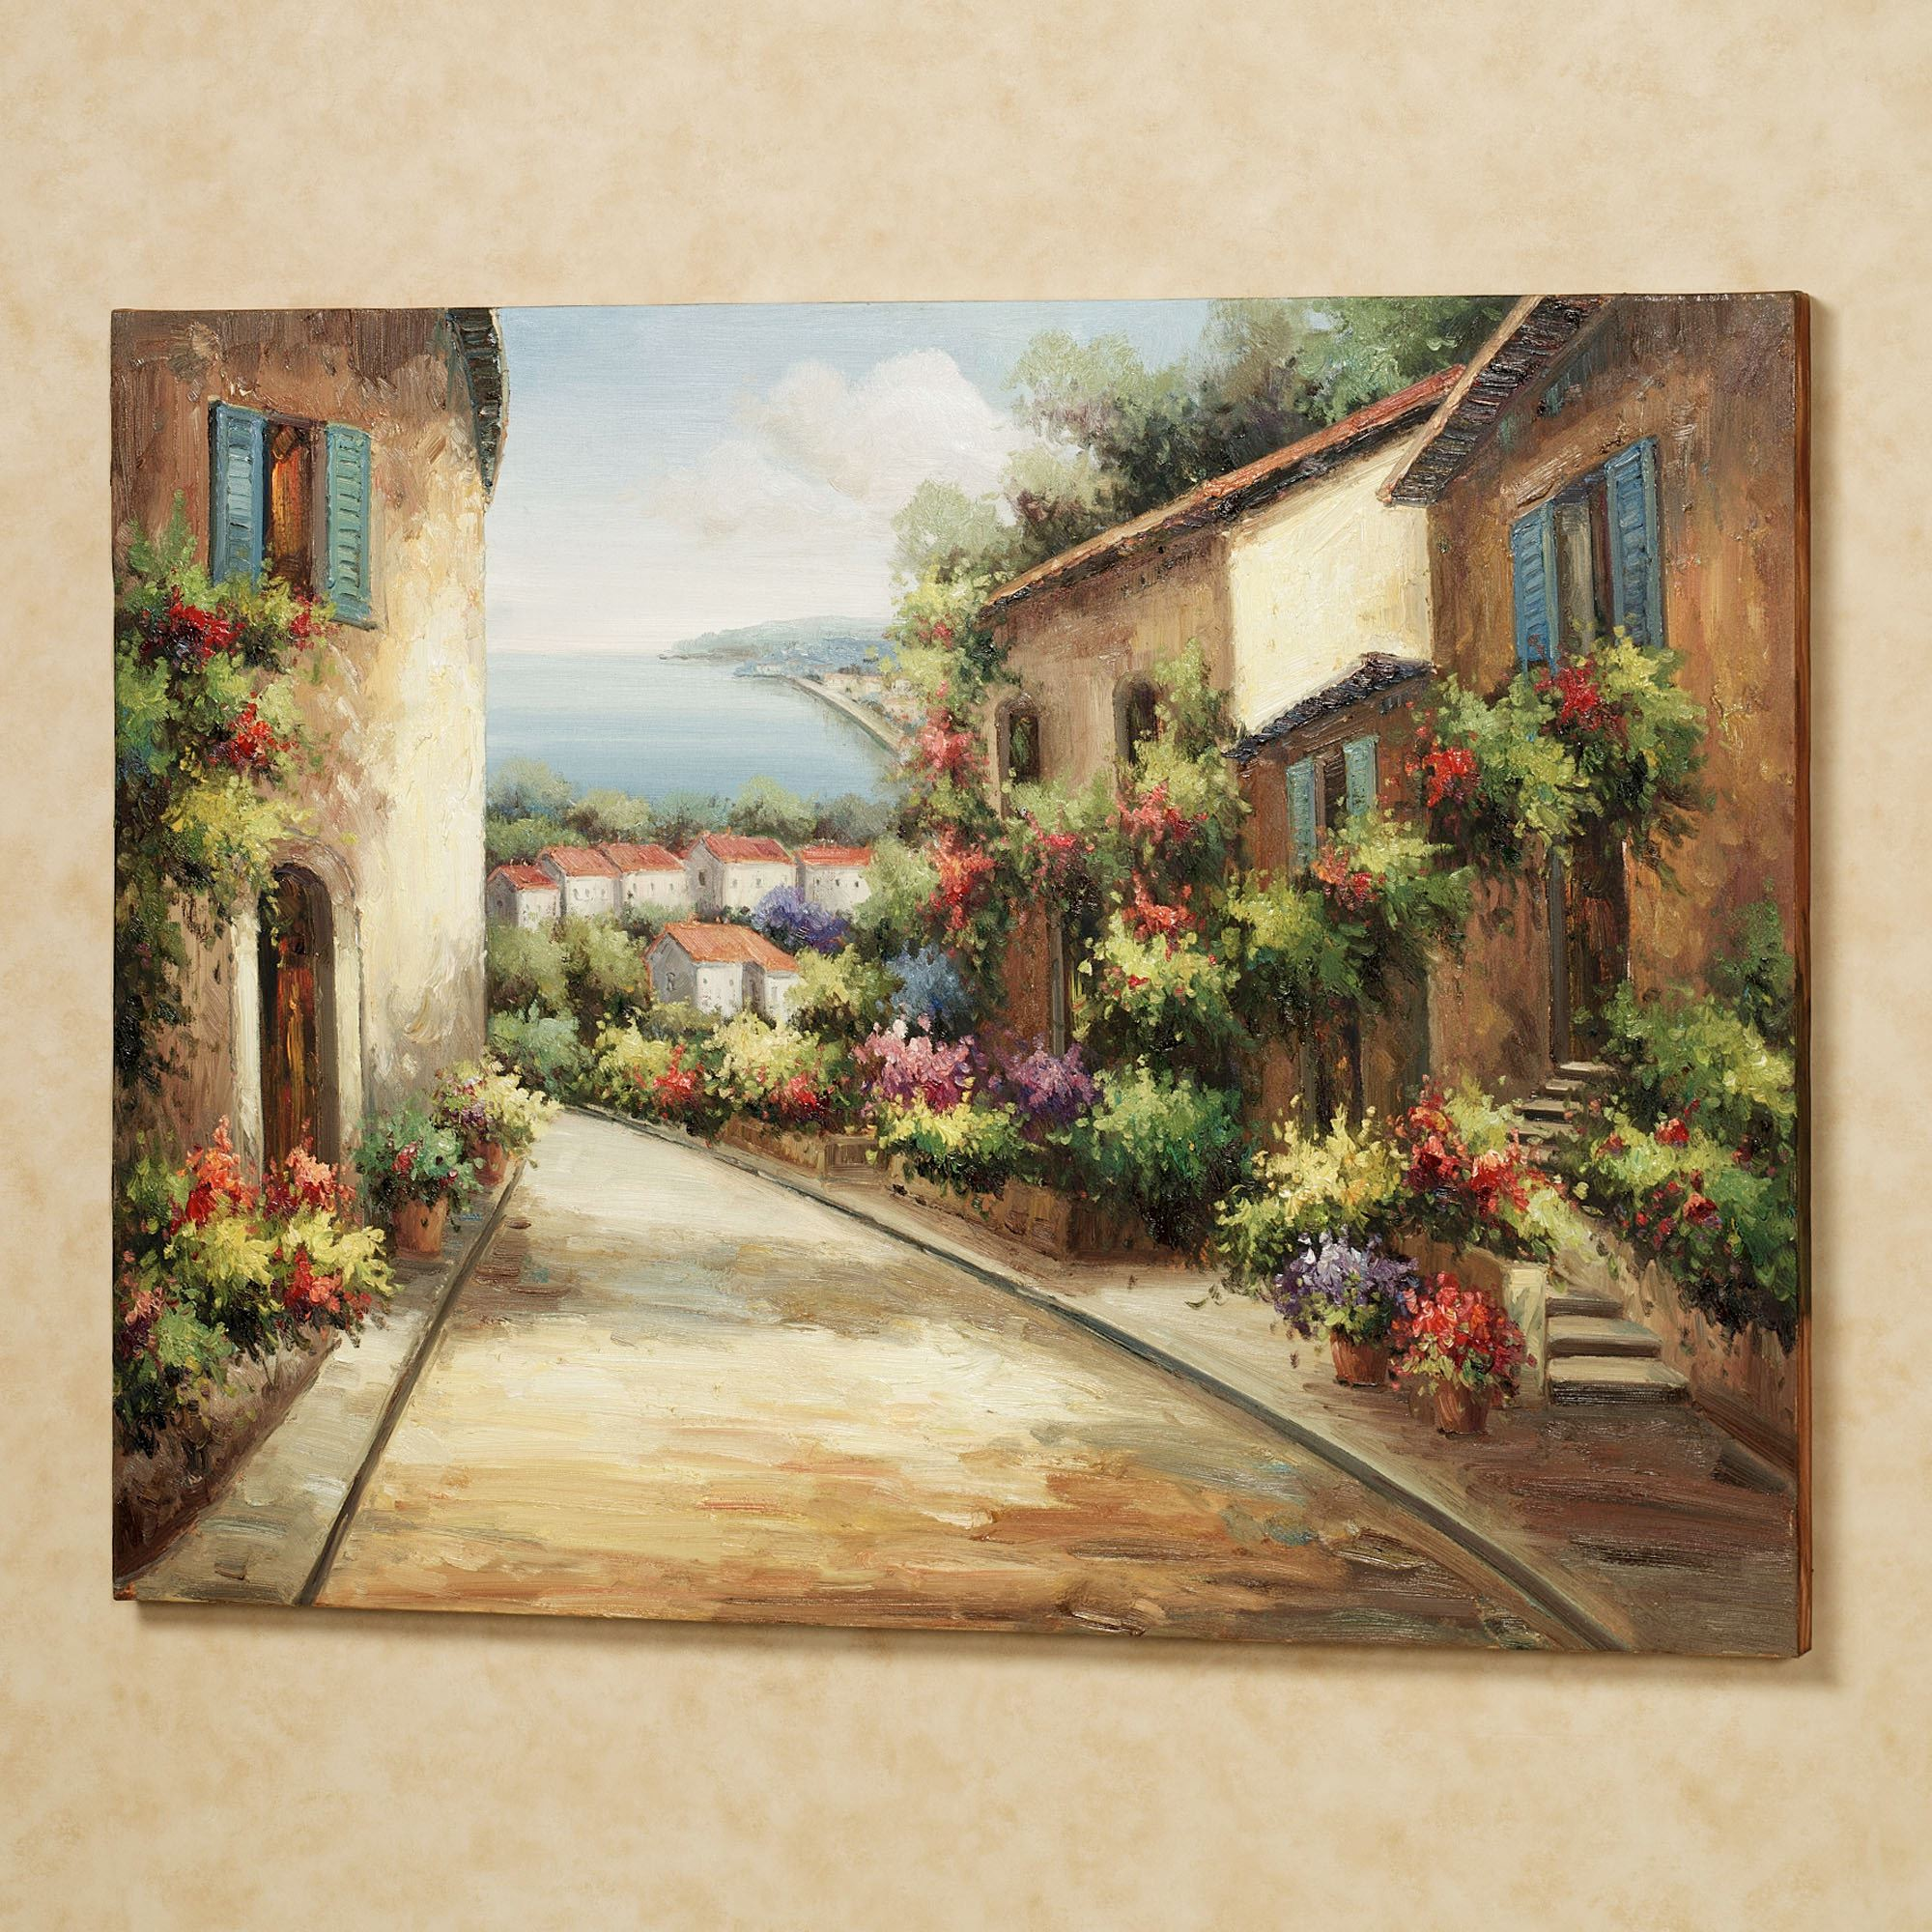 Merveilleux Streets Of Tuscany Canvas Wall Art Multi Pastel. Click To Expand